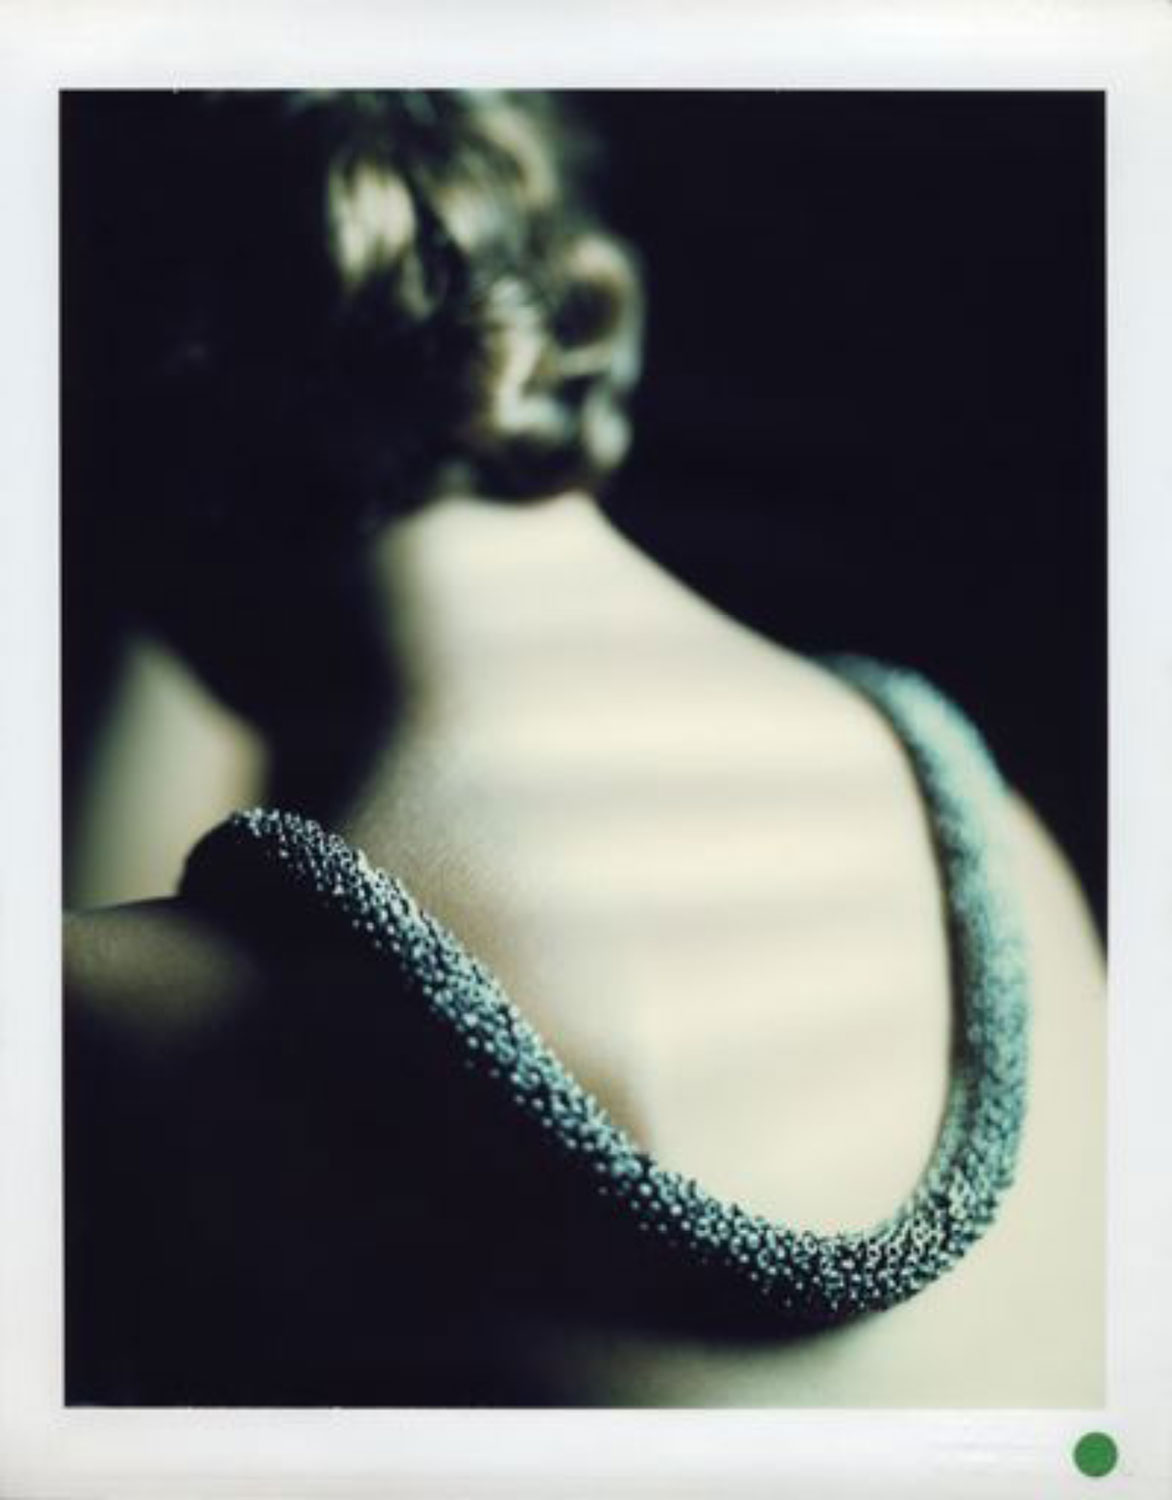 JOSÉ PICAYO  DOMINO MAGAZINE, NECKLACE, 1988  ARCHIVAL PIGMENT PRINT